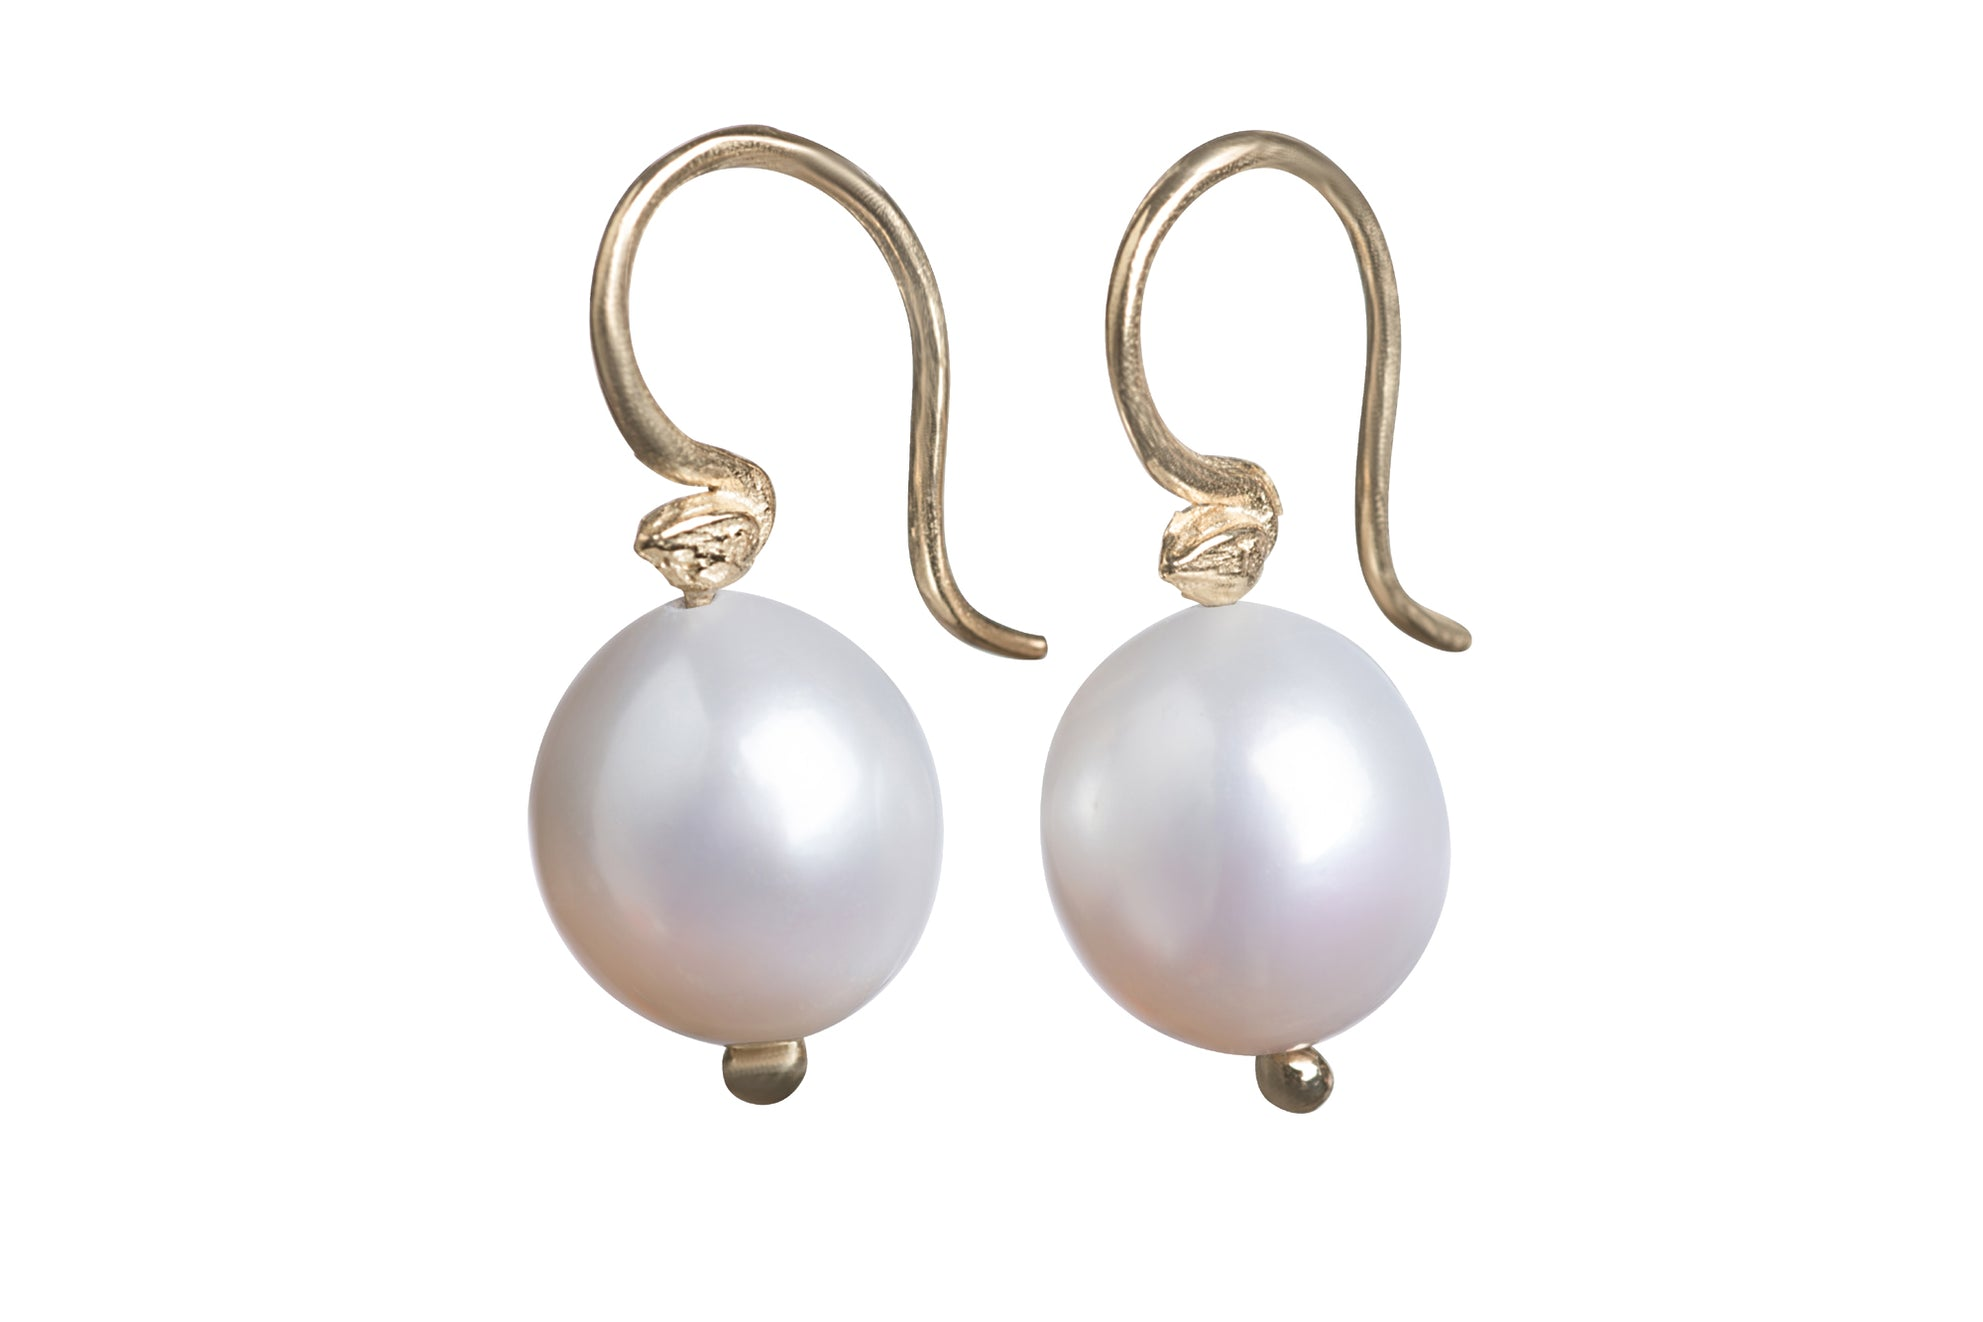 earrings rollover white yg akoya single pearl to zoom stud